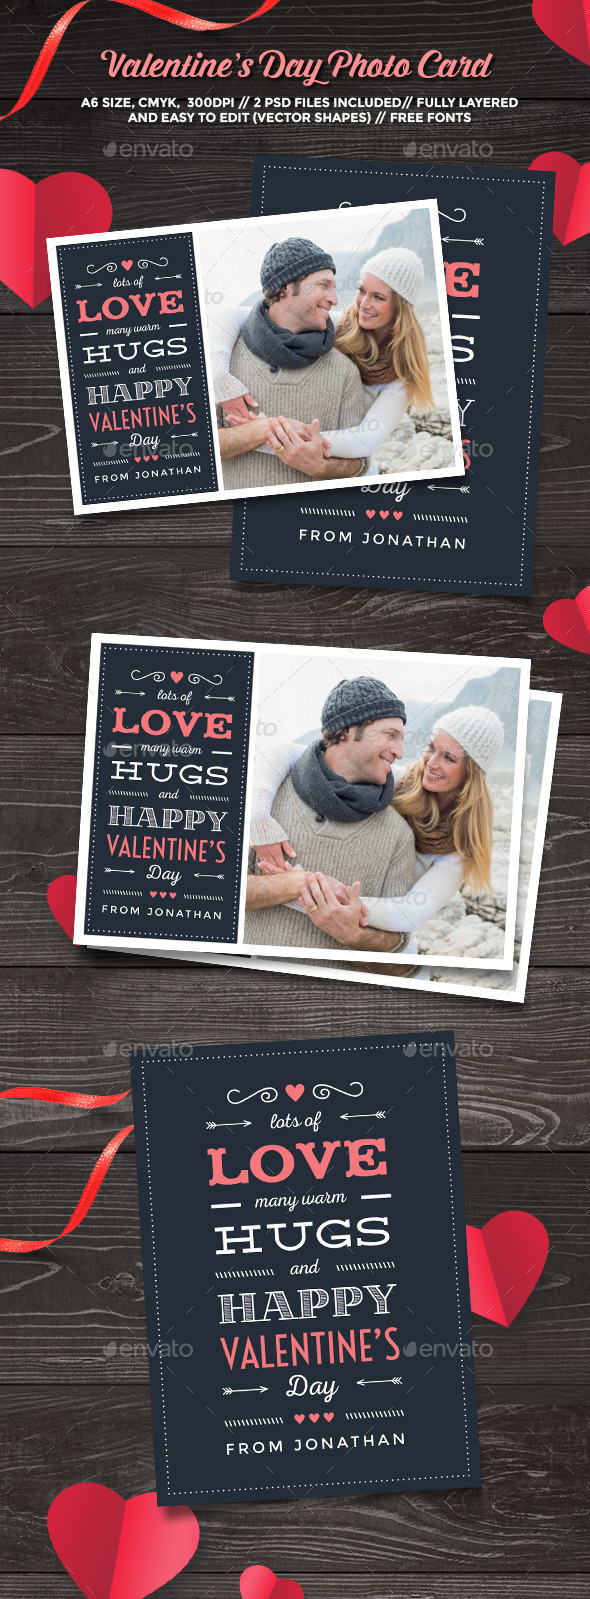 Valentine's Day Photo Card - Greeting Cards Cards & Invites